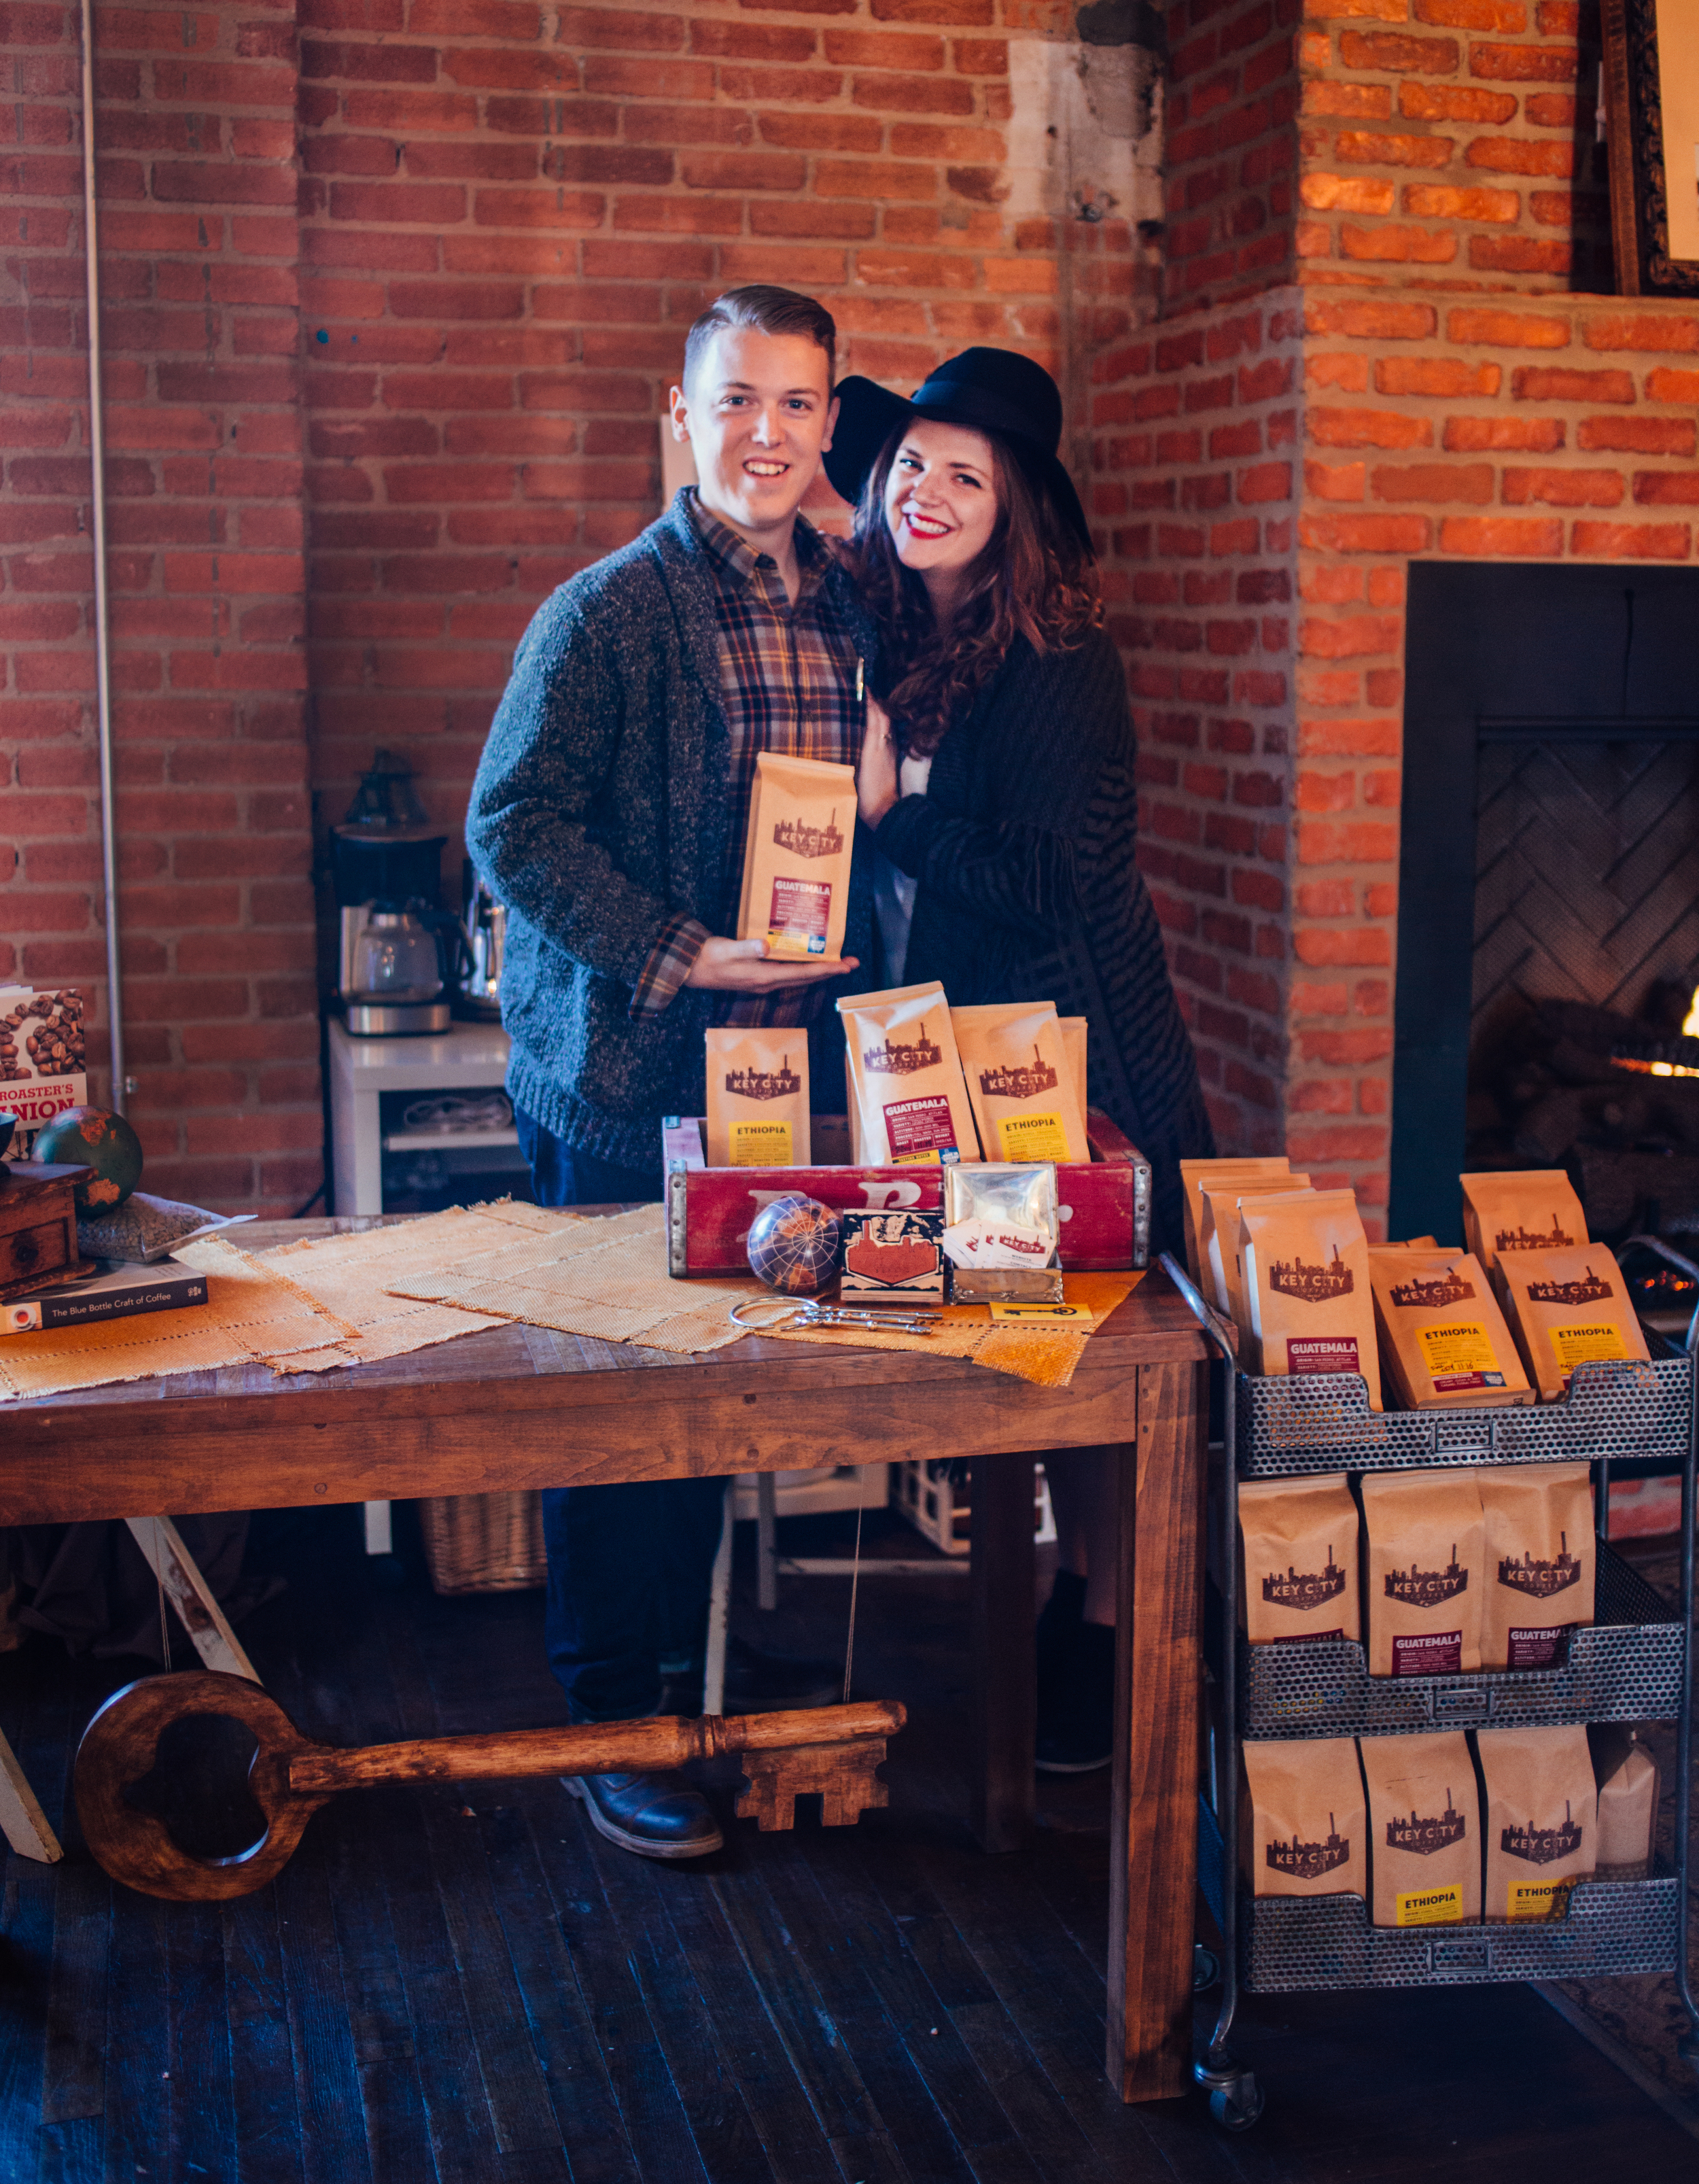 Daniel and Emily Parker, owners of Key City Coffee at the Fall 2015 People Party Craft Fair | Photo by Roslynne Love